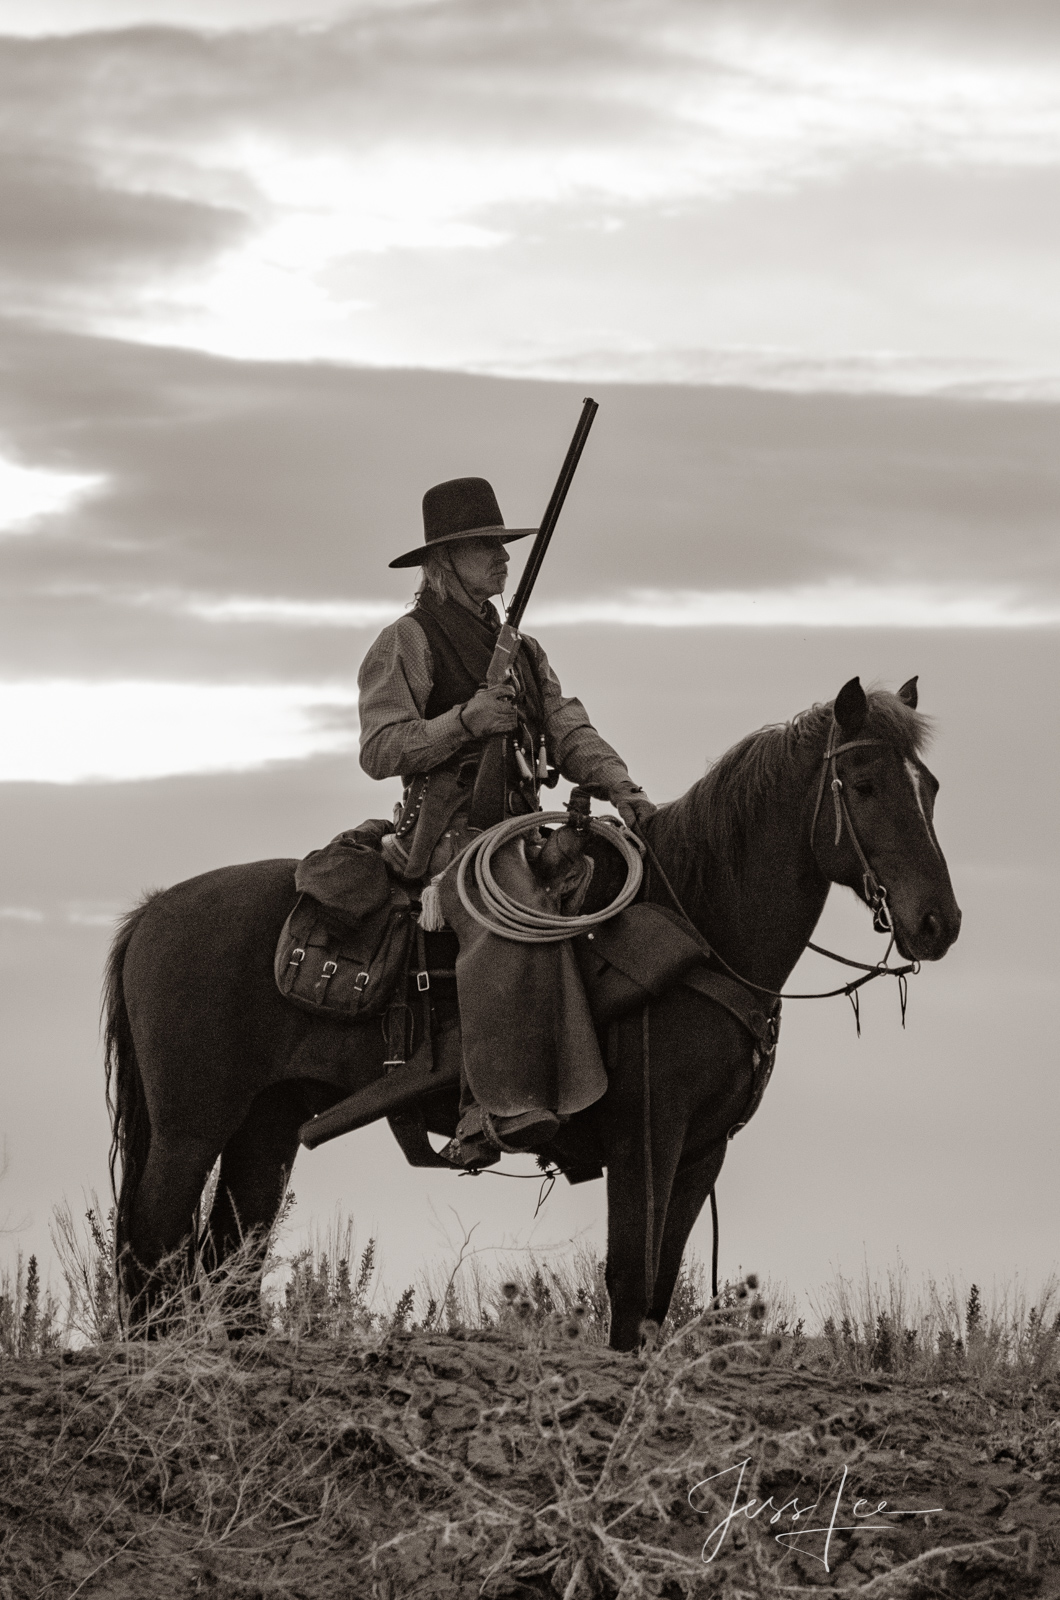 Cowboy on horse night guarding cattle.